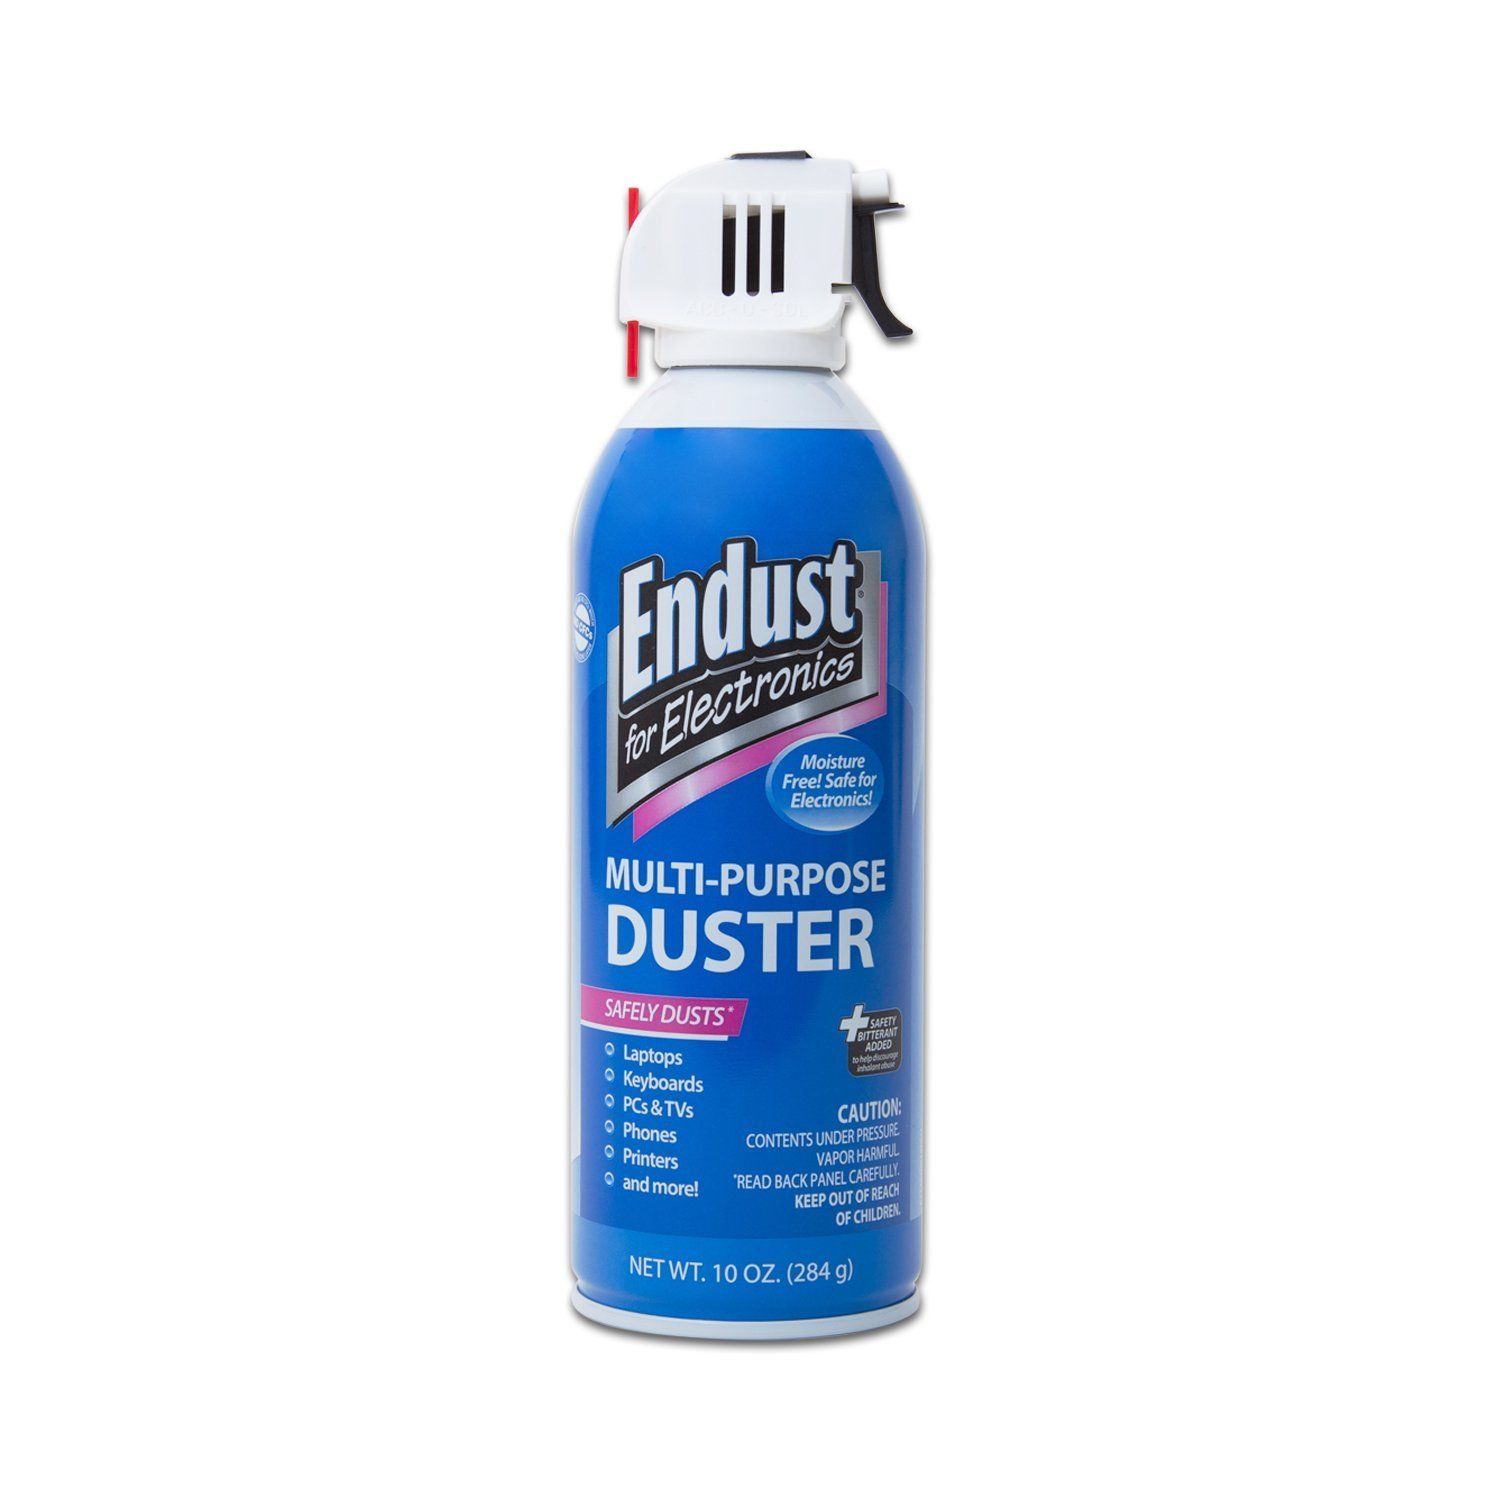 Endust for Electronics, Bulk pack, 6 Compressed dusters, 10 oz per can, Contains bitterant (11407P6)